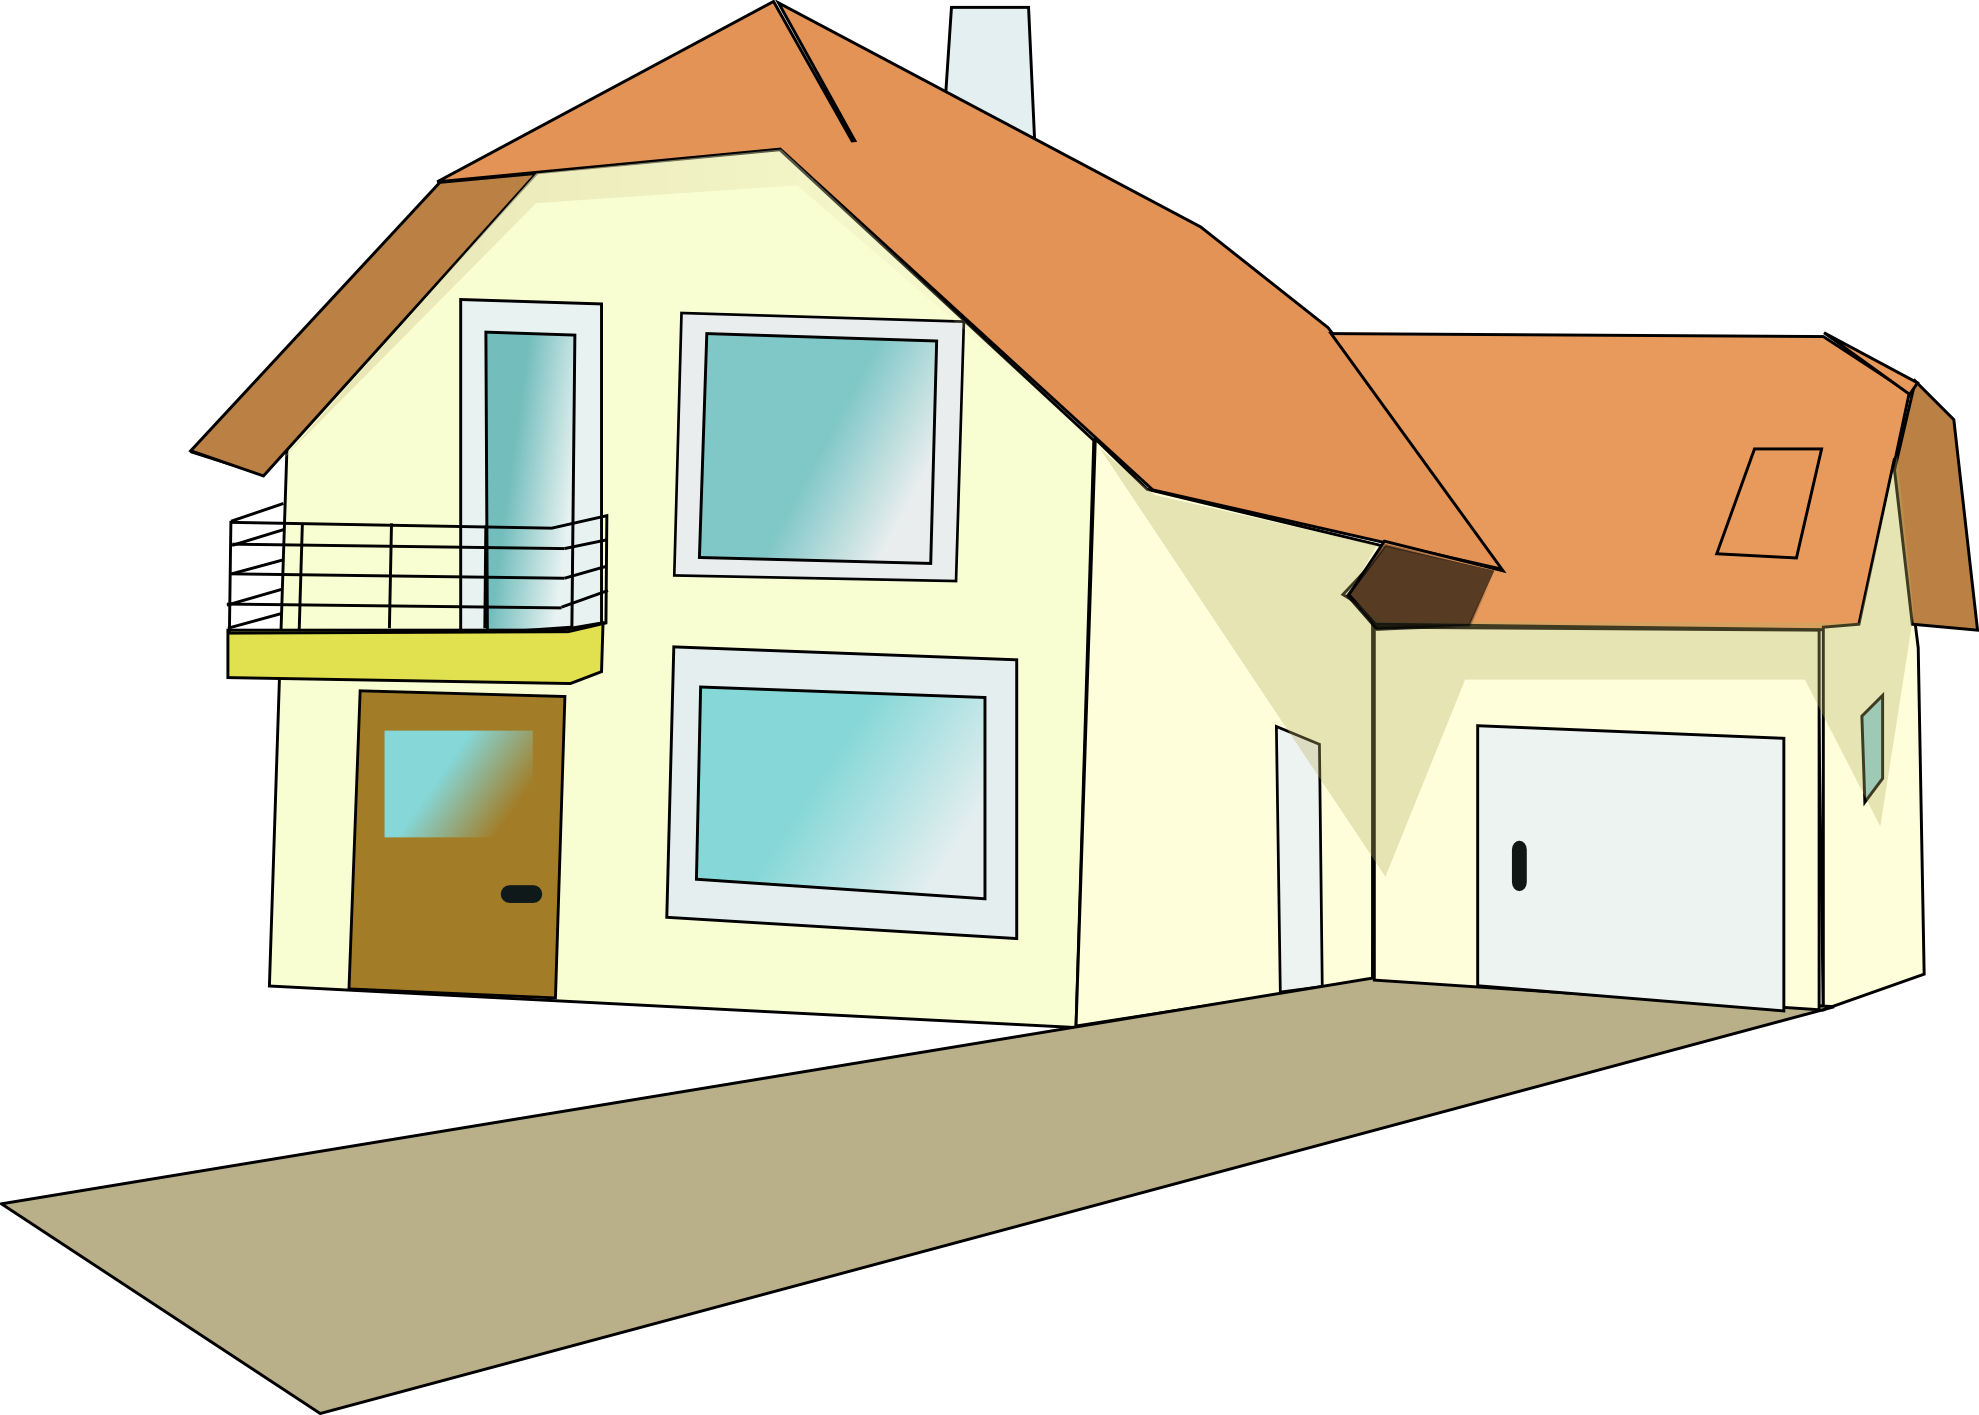 House Free Transparent Png 10962